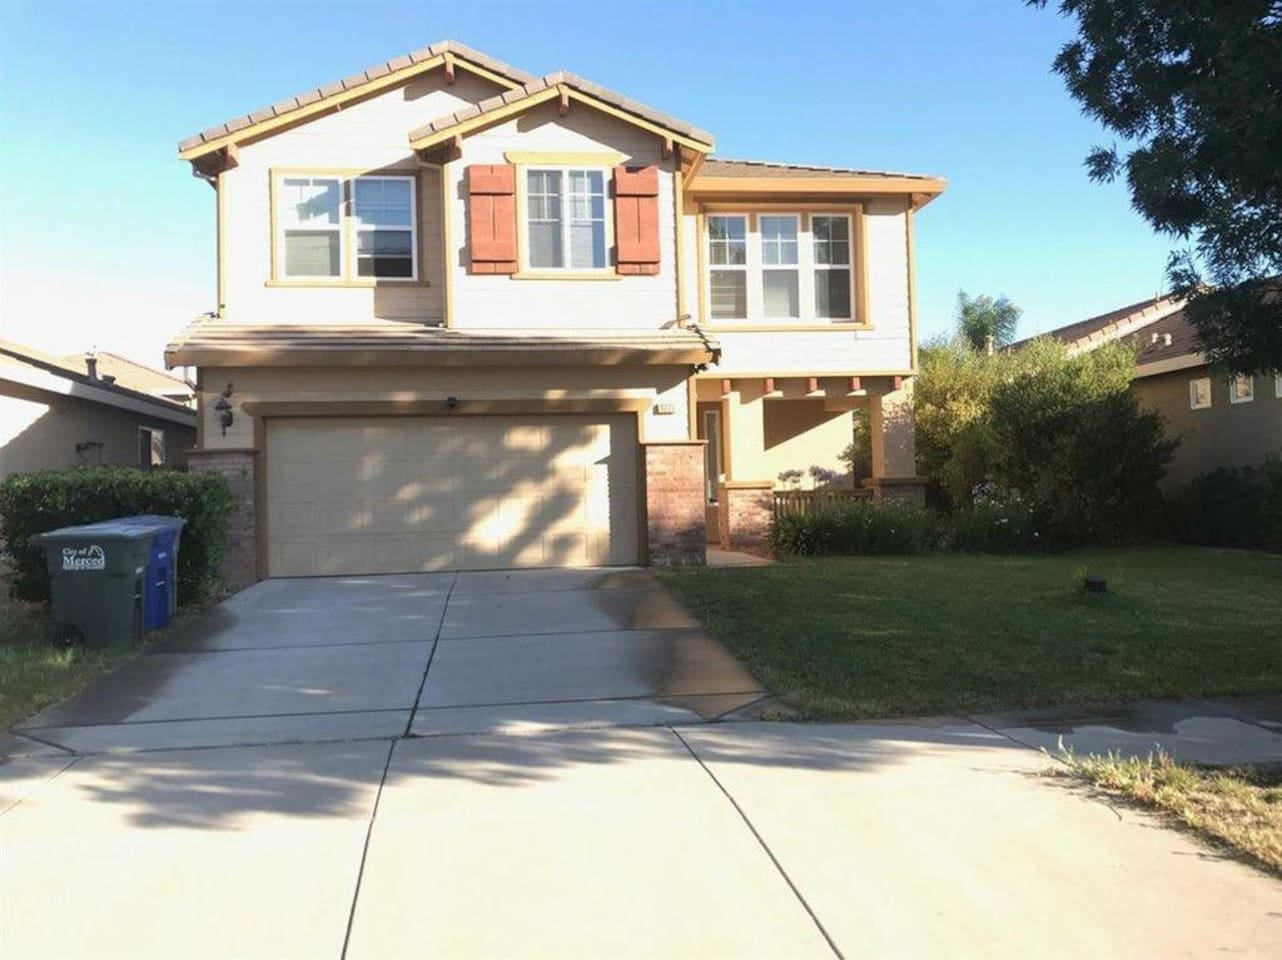 Beautiful large house with lots of space in a safe neighborhood.